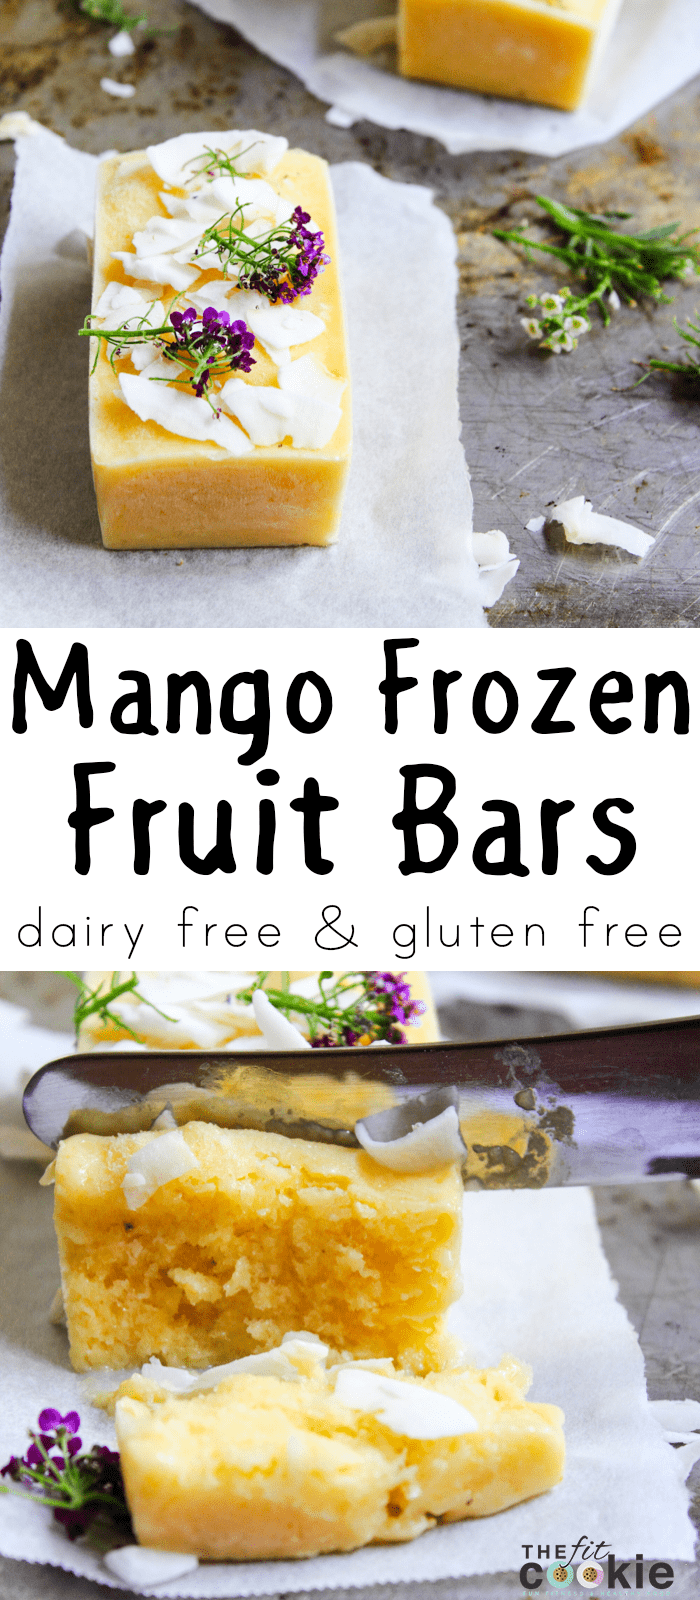 Cool off this summer with these tasty Mango Frozen Fruit Bars, they're creamy, sweet, and made with only 4 healthy ingredients. They are the perfect treat to brighten ANY hot day! - @TheFitCookie #frozendessert #dairyfree #glutenfree